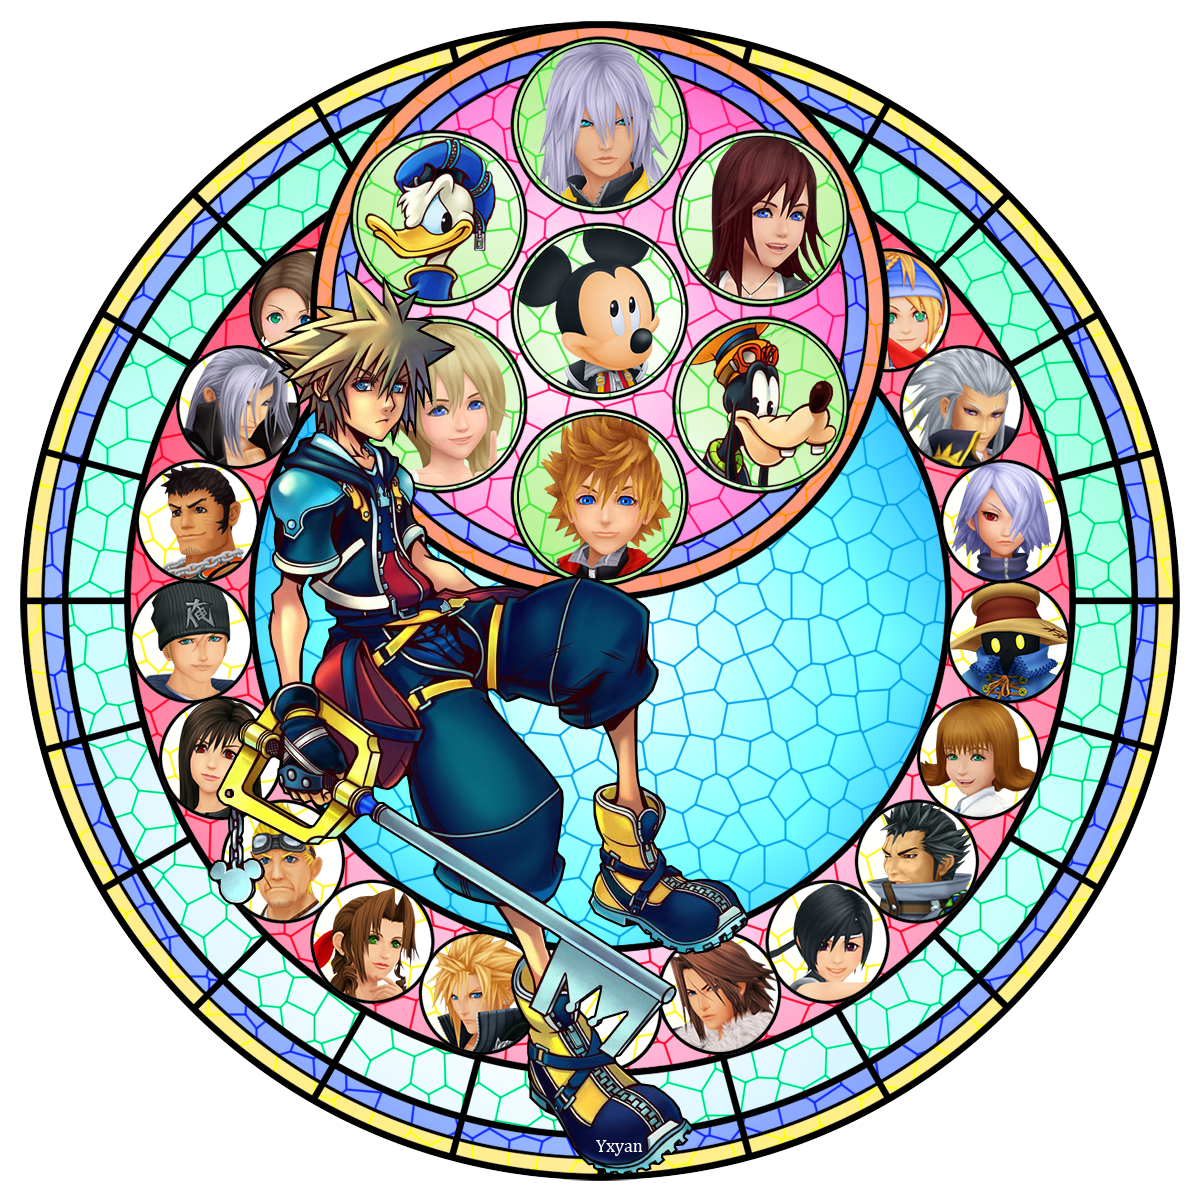 kingdom hearts images - photo #31